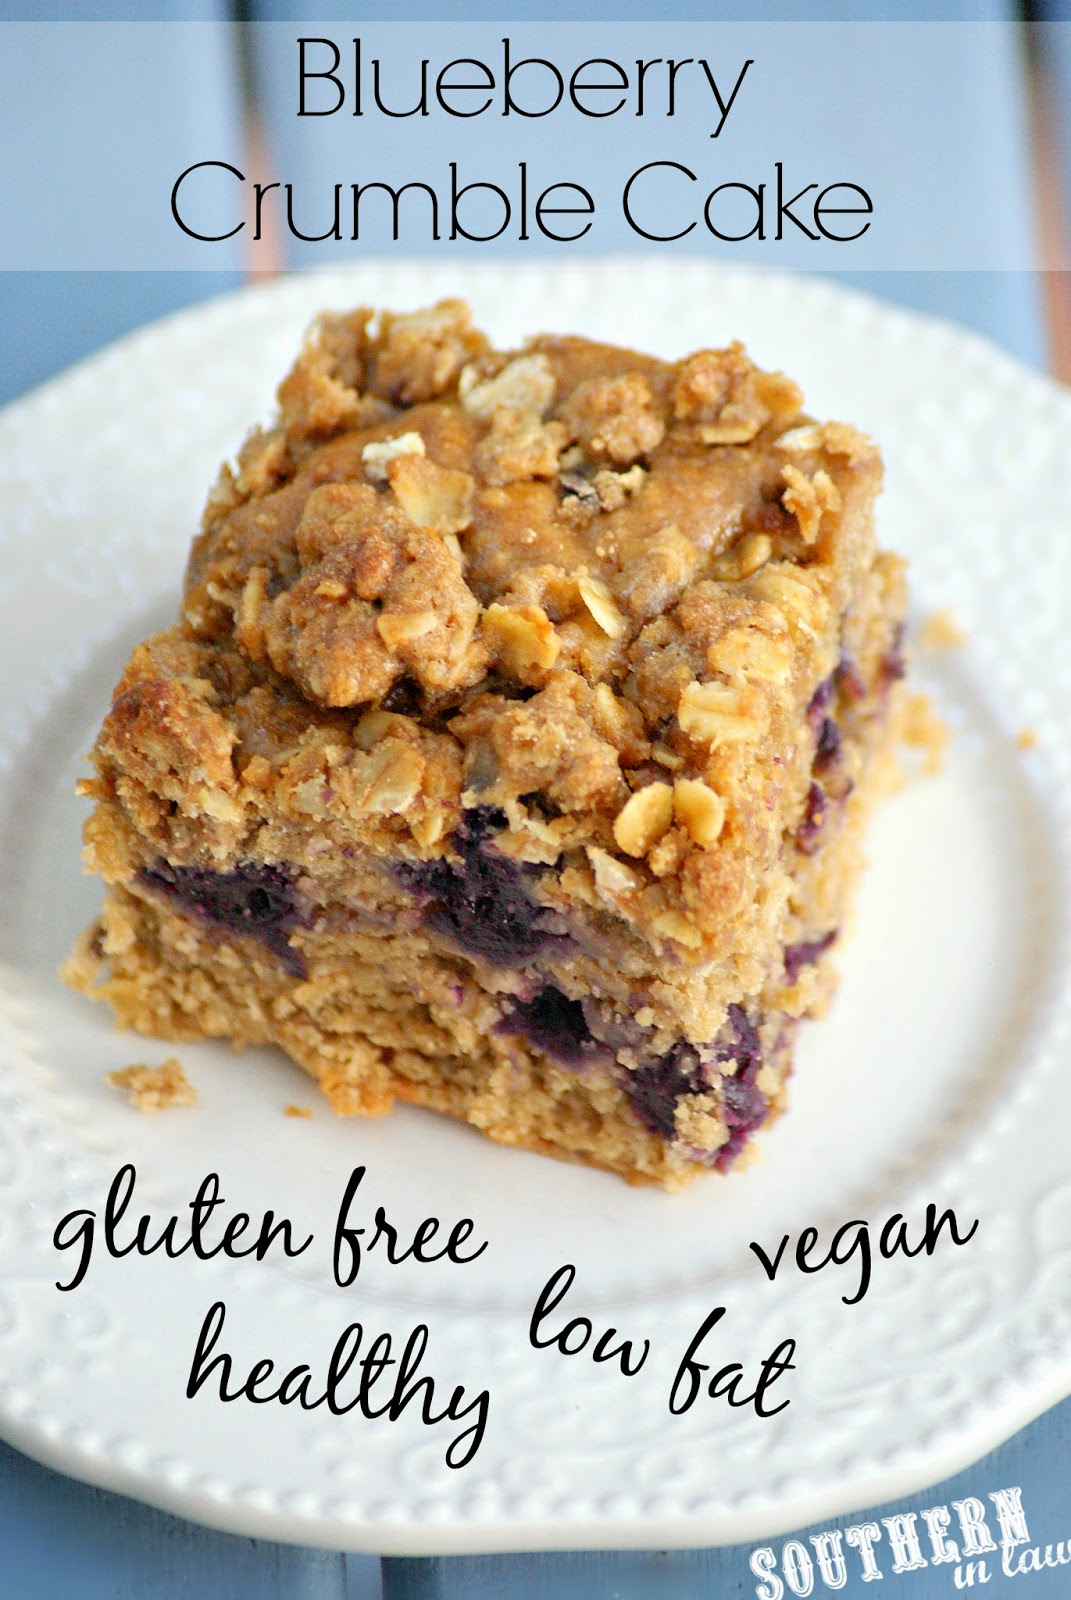 ... Crumble Cake - and just like that cake, it's gluten free, low fat